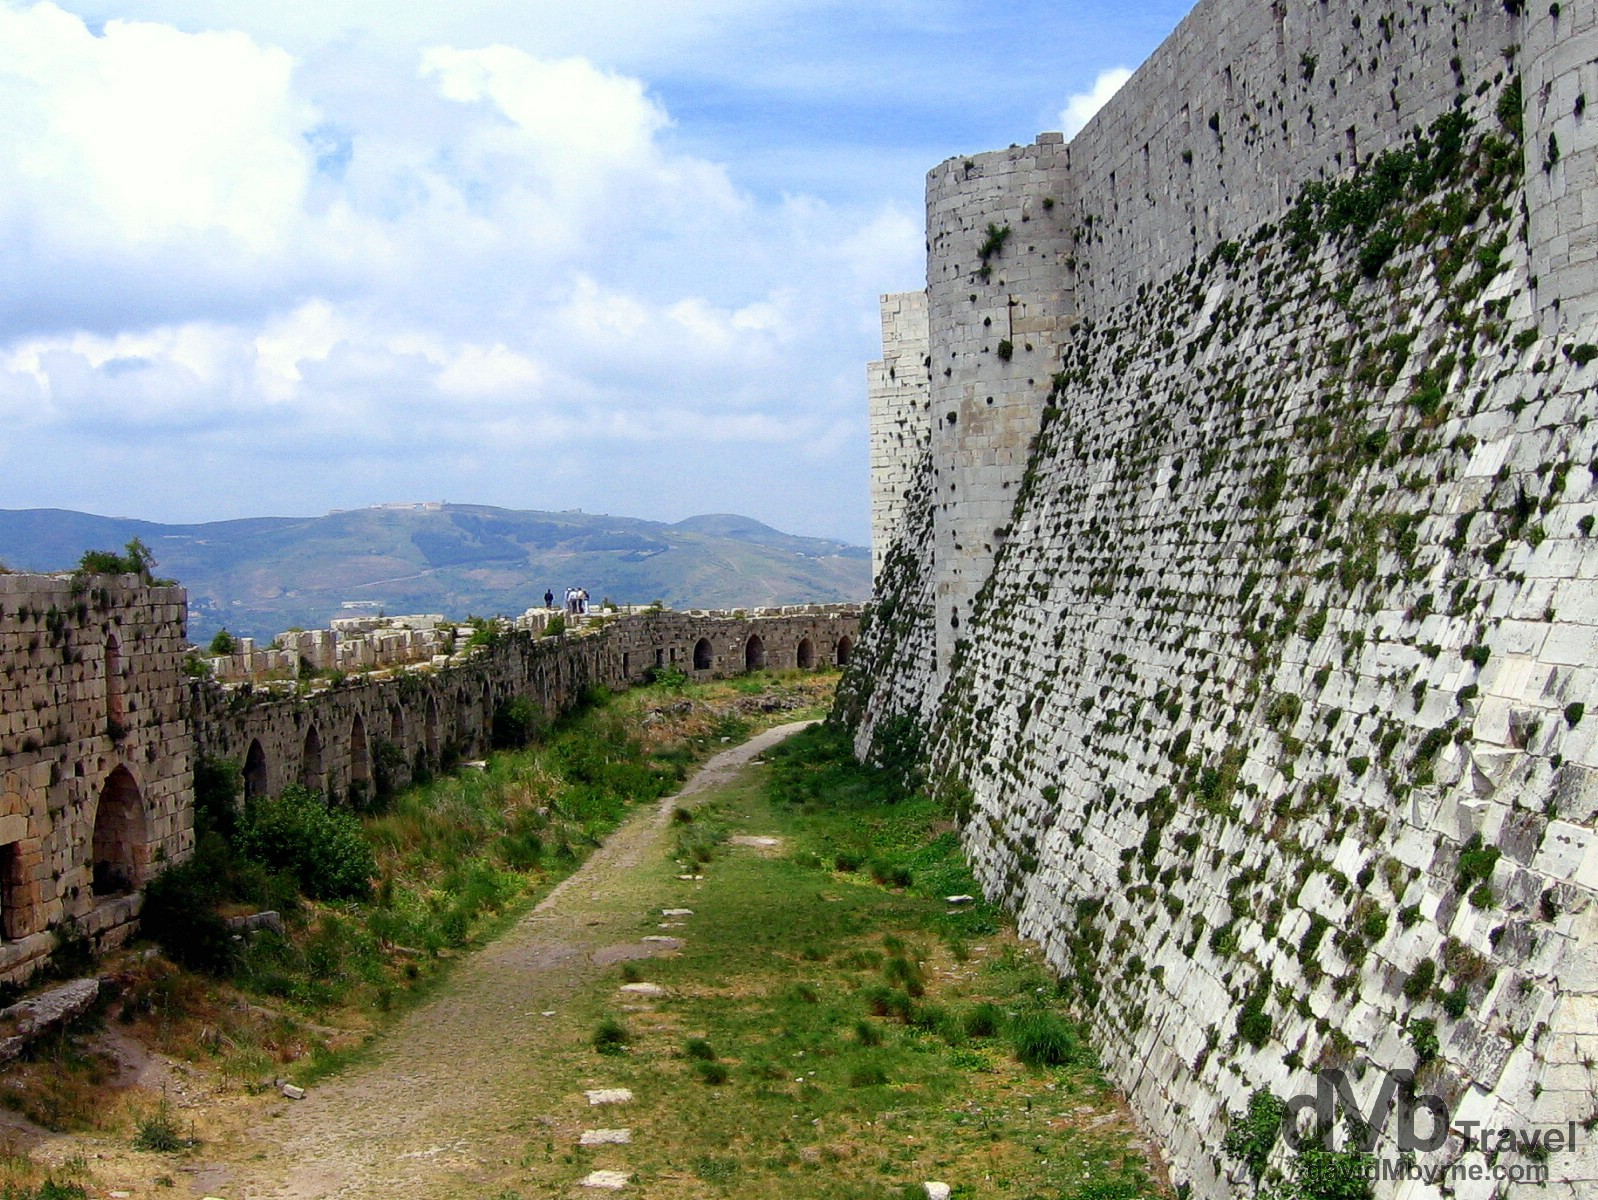 A section of the external wall of the Crusader castle Crac des Chevaliers in Syria. May 7, 2008.